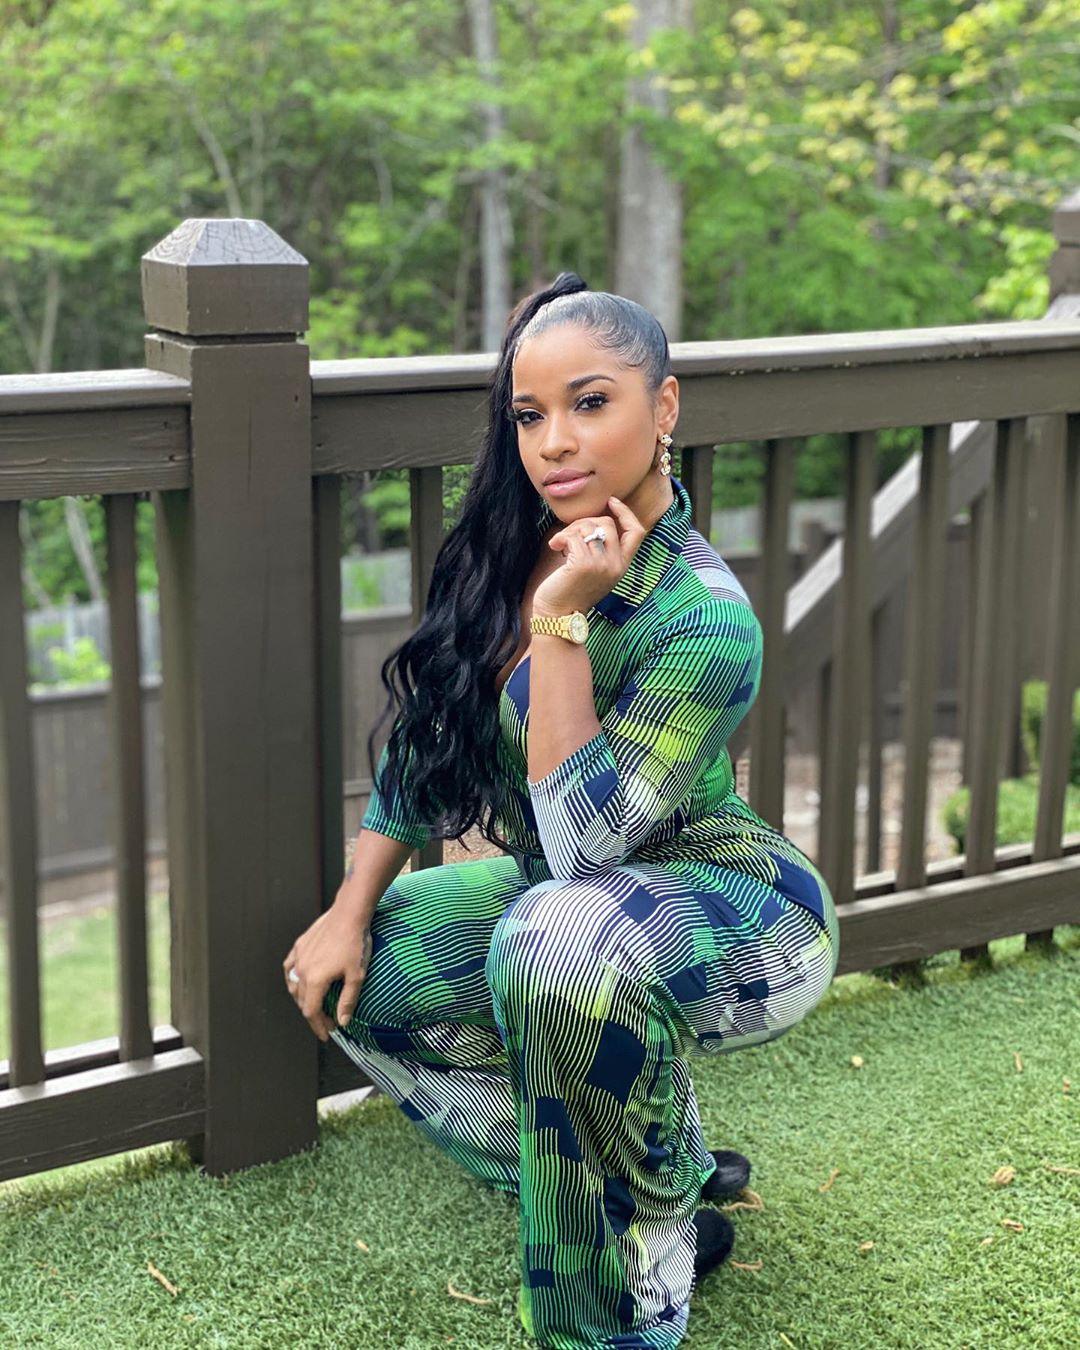 Toya Johnson Is Celebrating Her Birthday A Little Different This Year - See her Announcement